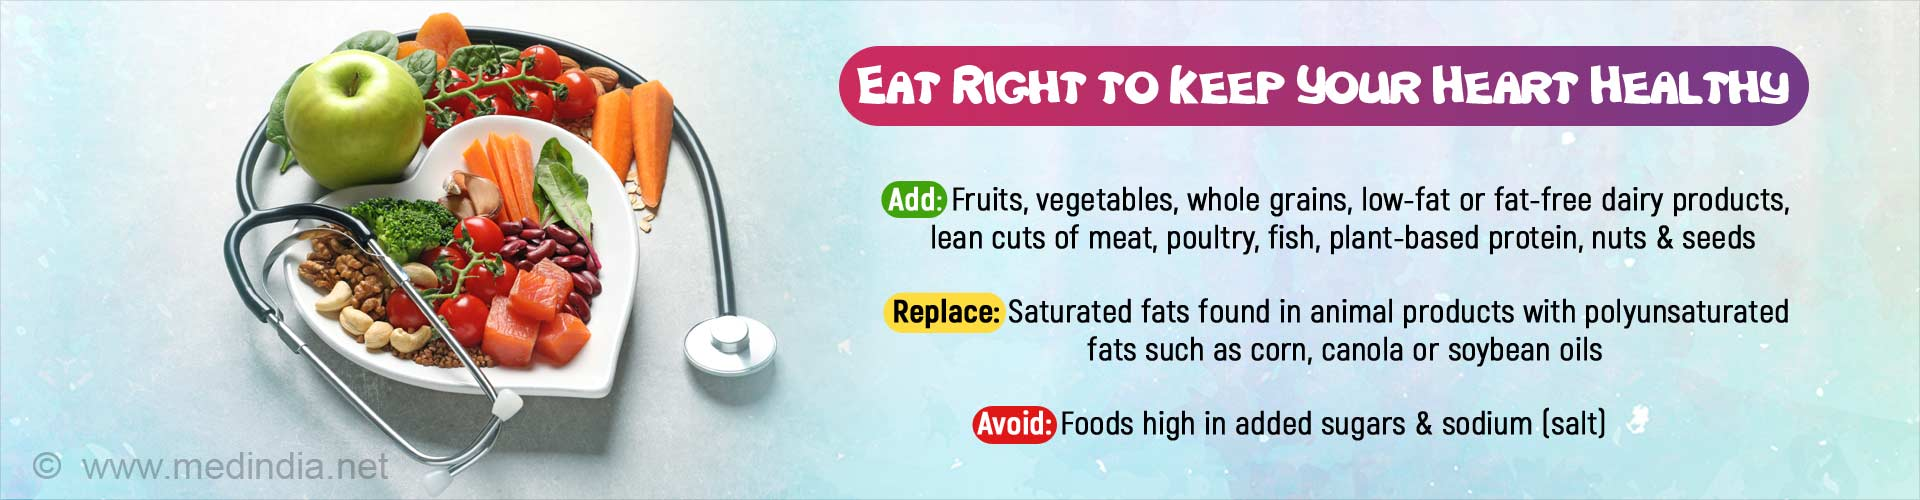 Eat right to keep your heart healthy. Add: Fruits, vegetables, whole grains, low-fat or fat-free dairy products, lean cuts of meat, poultry, fish, plant-based protein, nuts and seeds. Replace: Saturated fats found in animal products with polyunsaturated fats such as corn, canola or soybean oils. Avoid: Foods high in added sugars and sodium (salt).